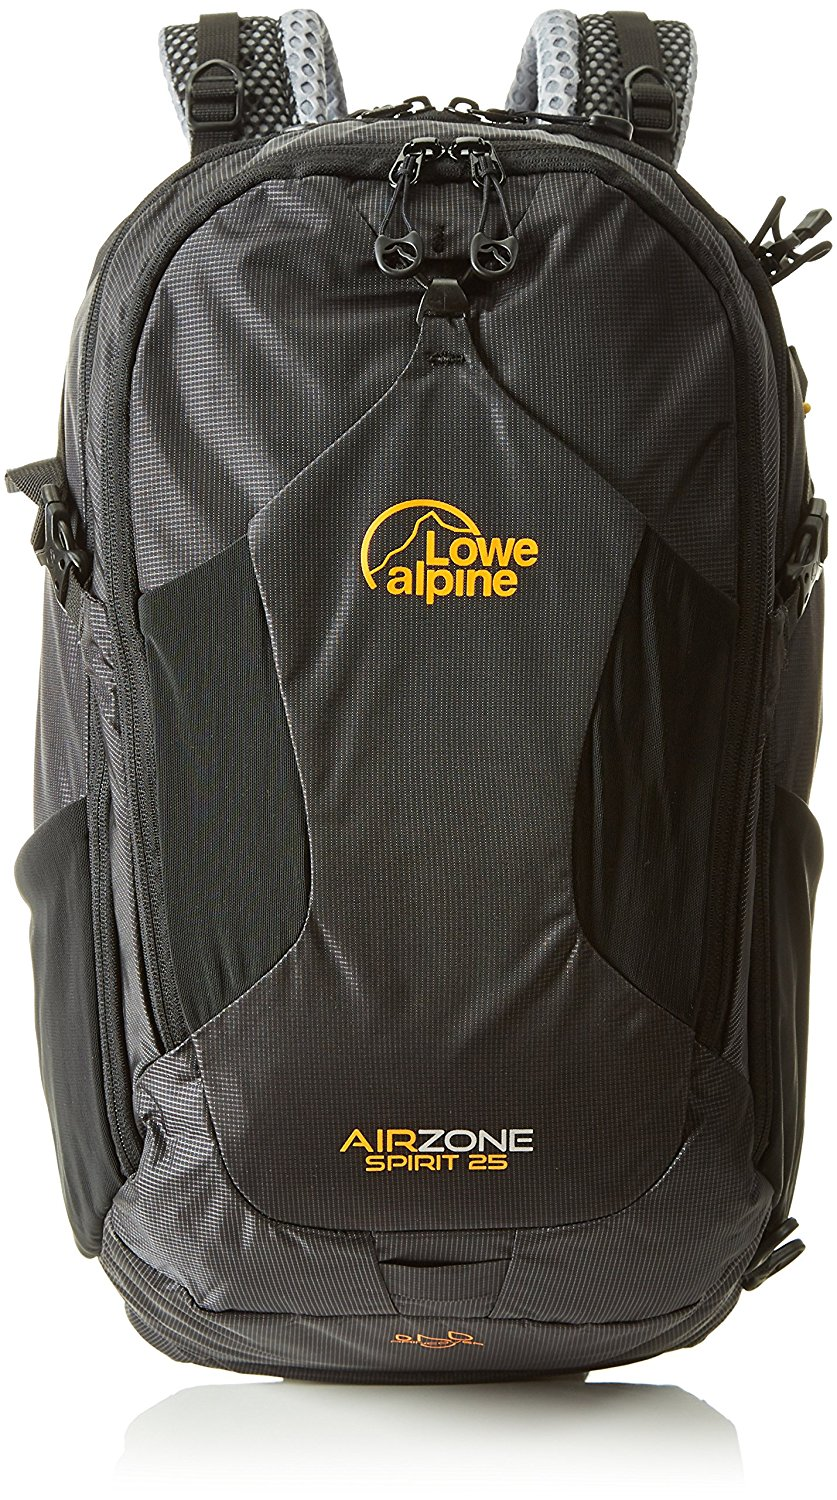 Lowe Alpine Air Zone Spirit